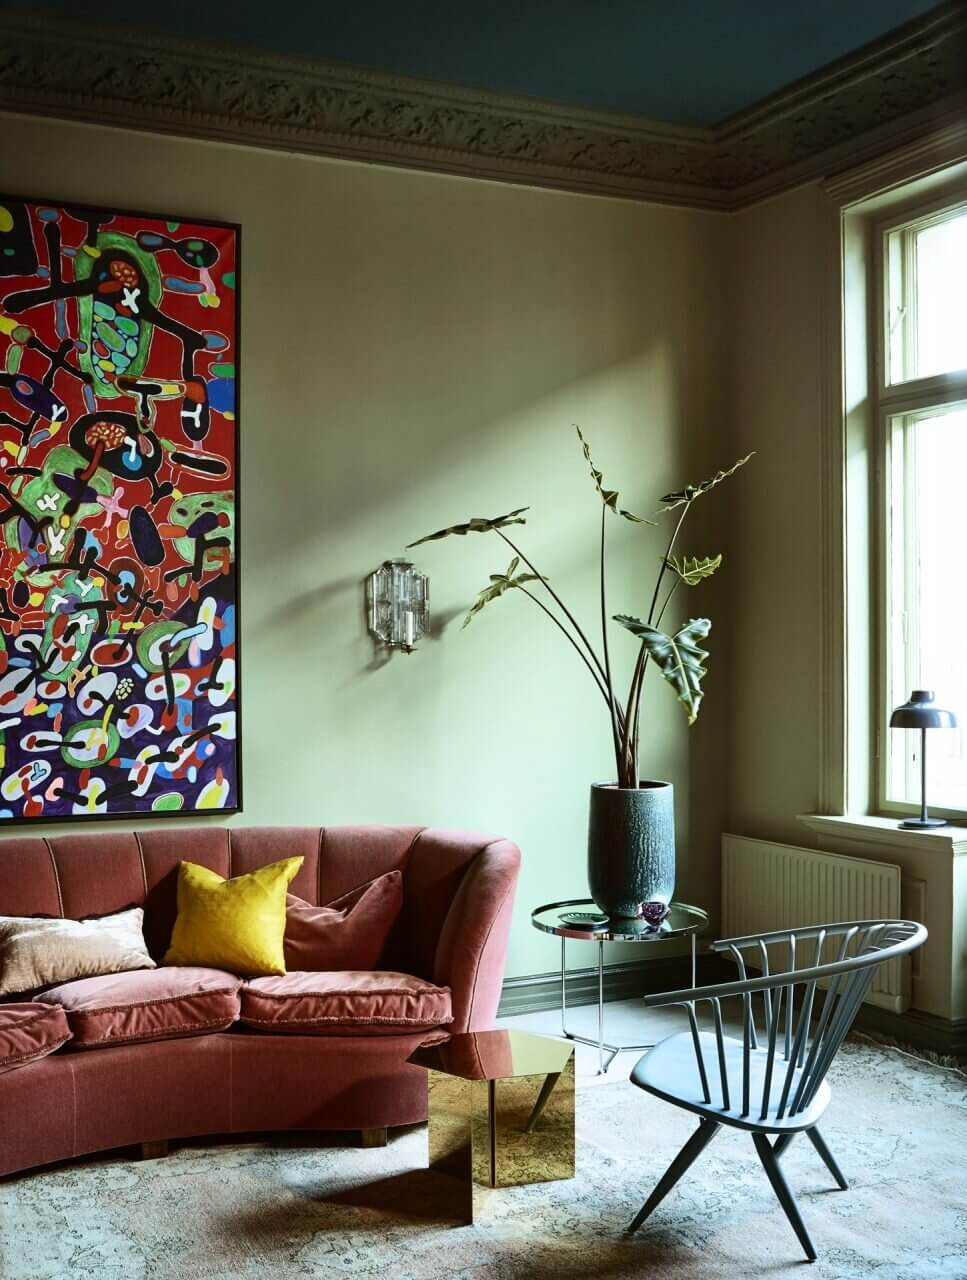 A Historic Apartment with Rich & Vibrant Color Combinations